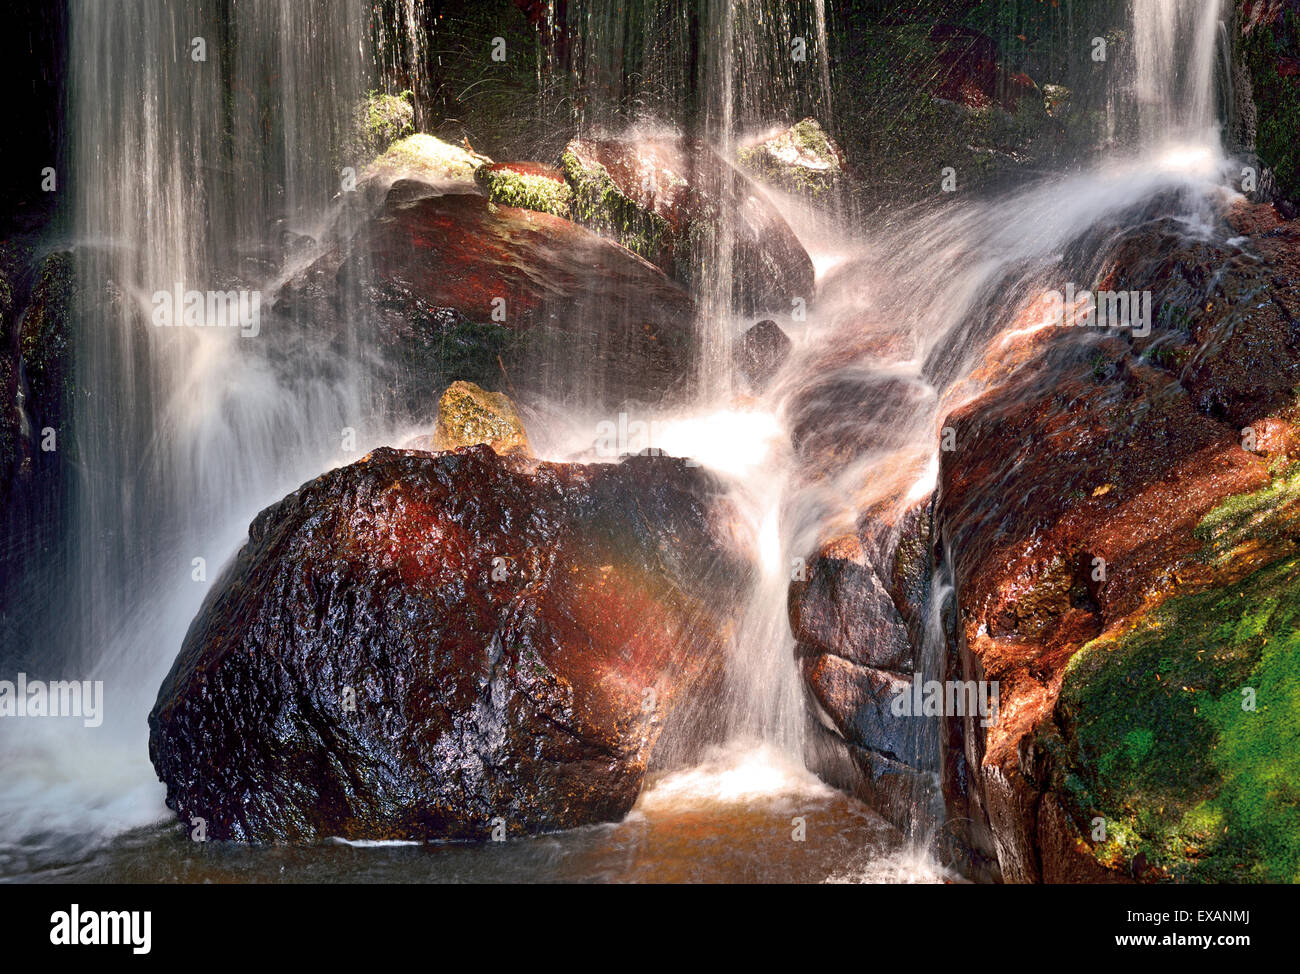 Germany, Black Forest: Detail of a cascade at the Waterfall of Menzenschwand - Stock Image